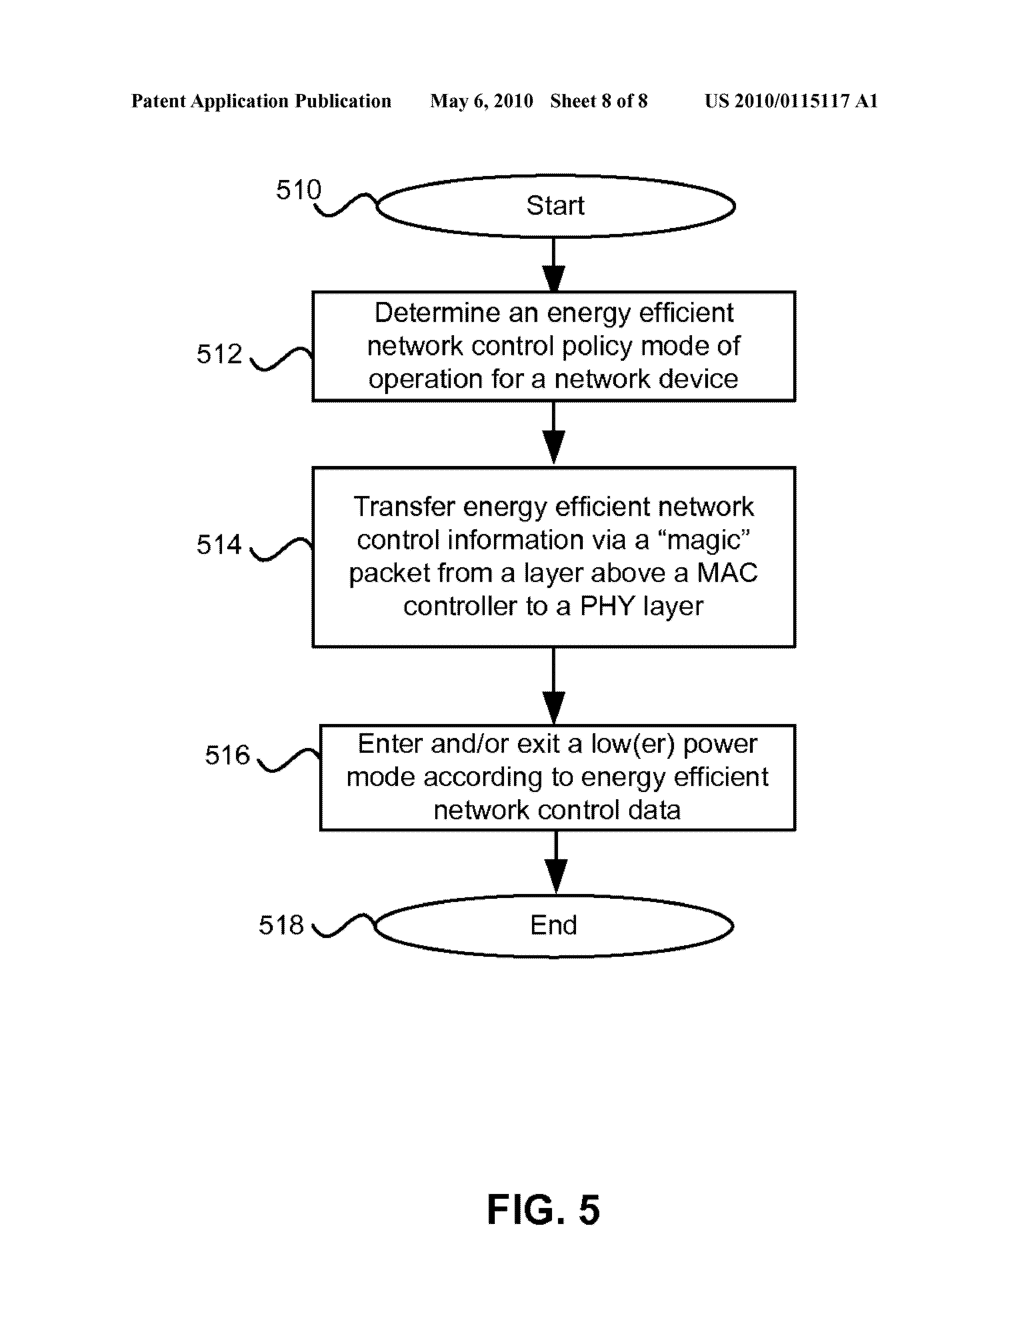 Method And System For Packet Based Signaling Between A MAC And A PHY To Manage Energy Efficient Network Devices And/Or Protocols - diagram, schematic, and image 09